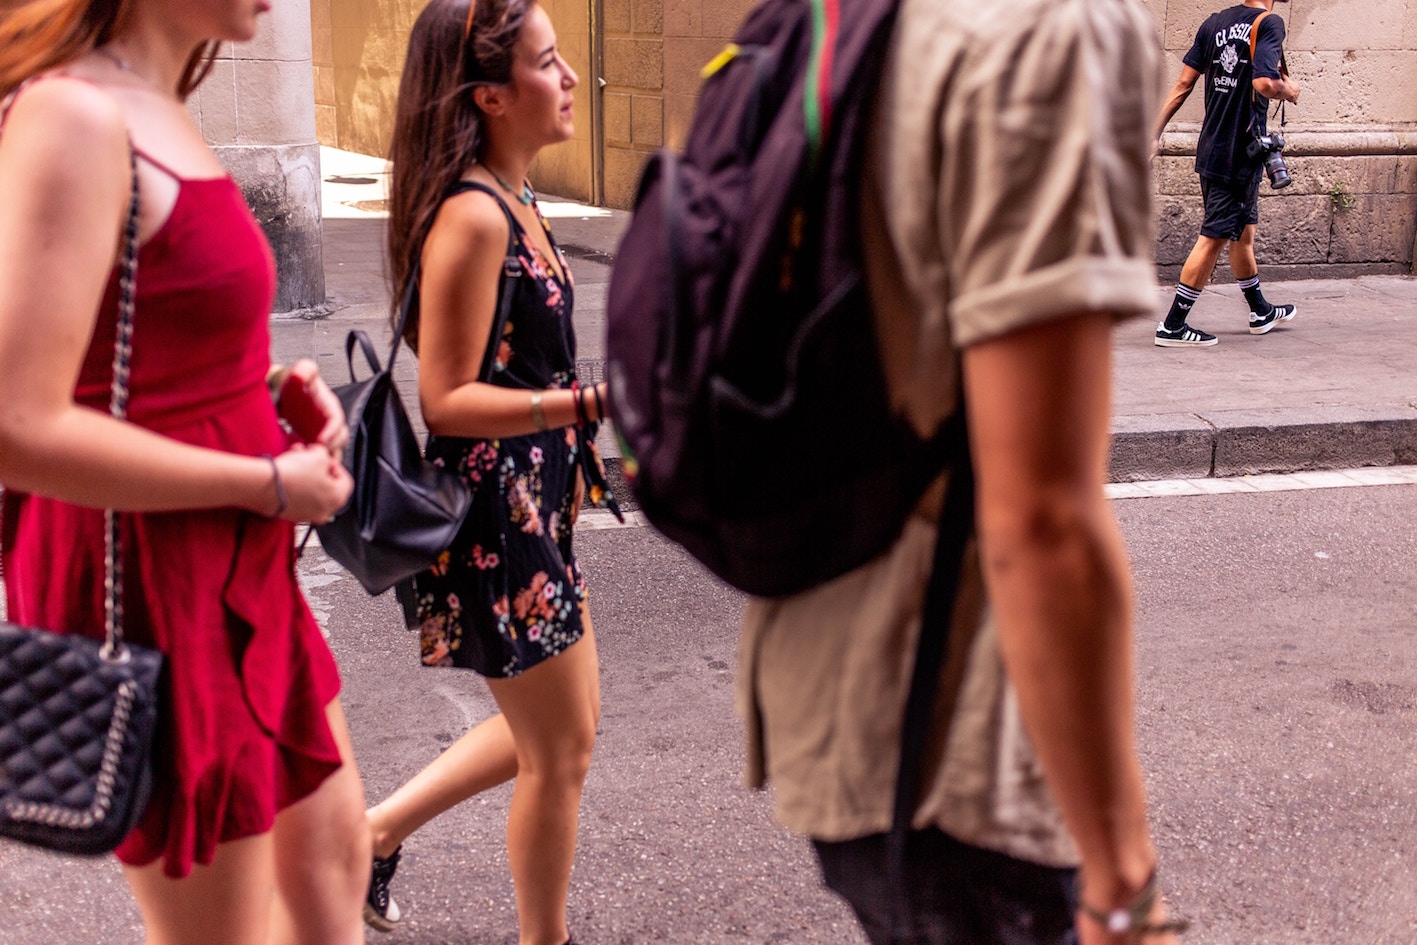 a man and two girls walking down the streeti in barcelona